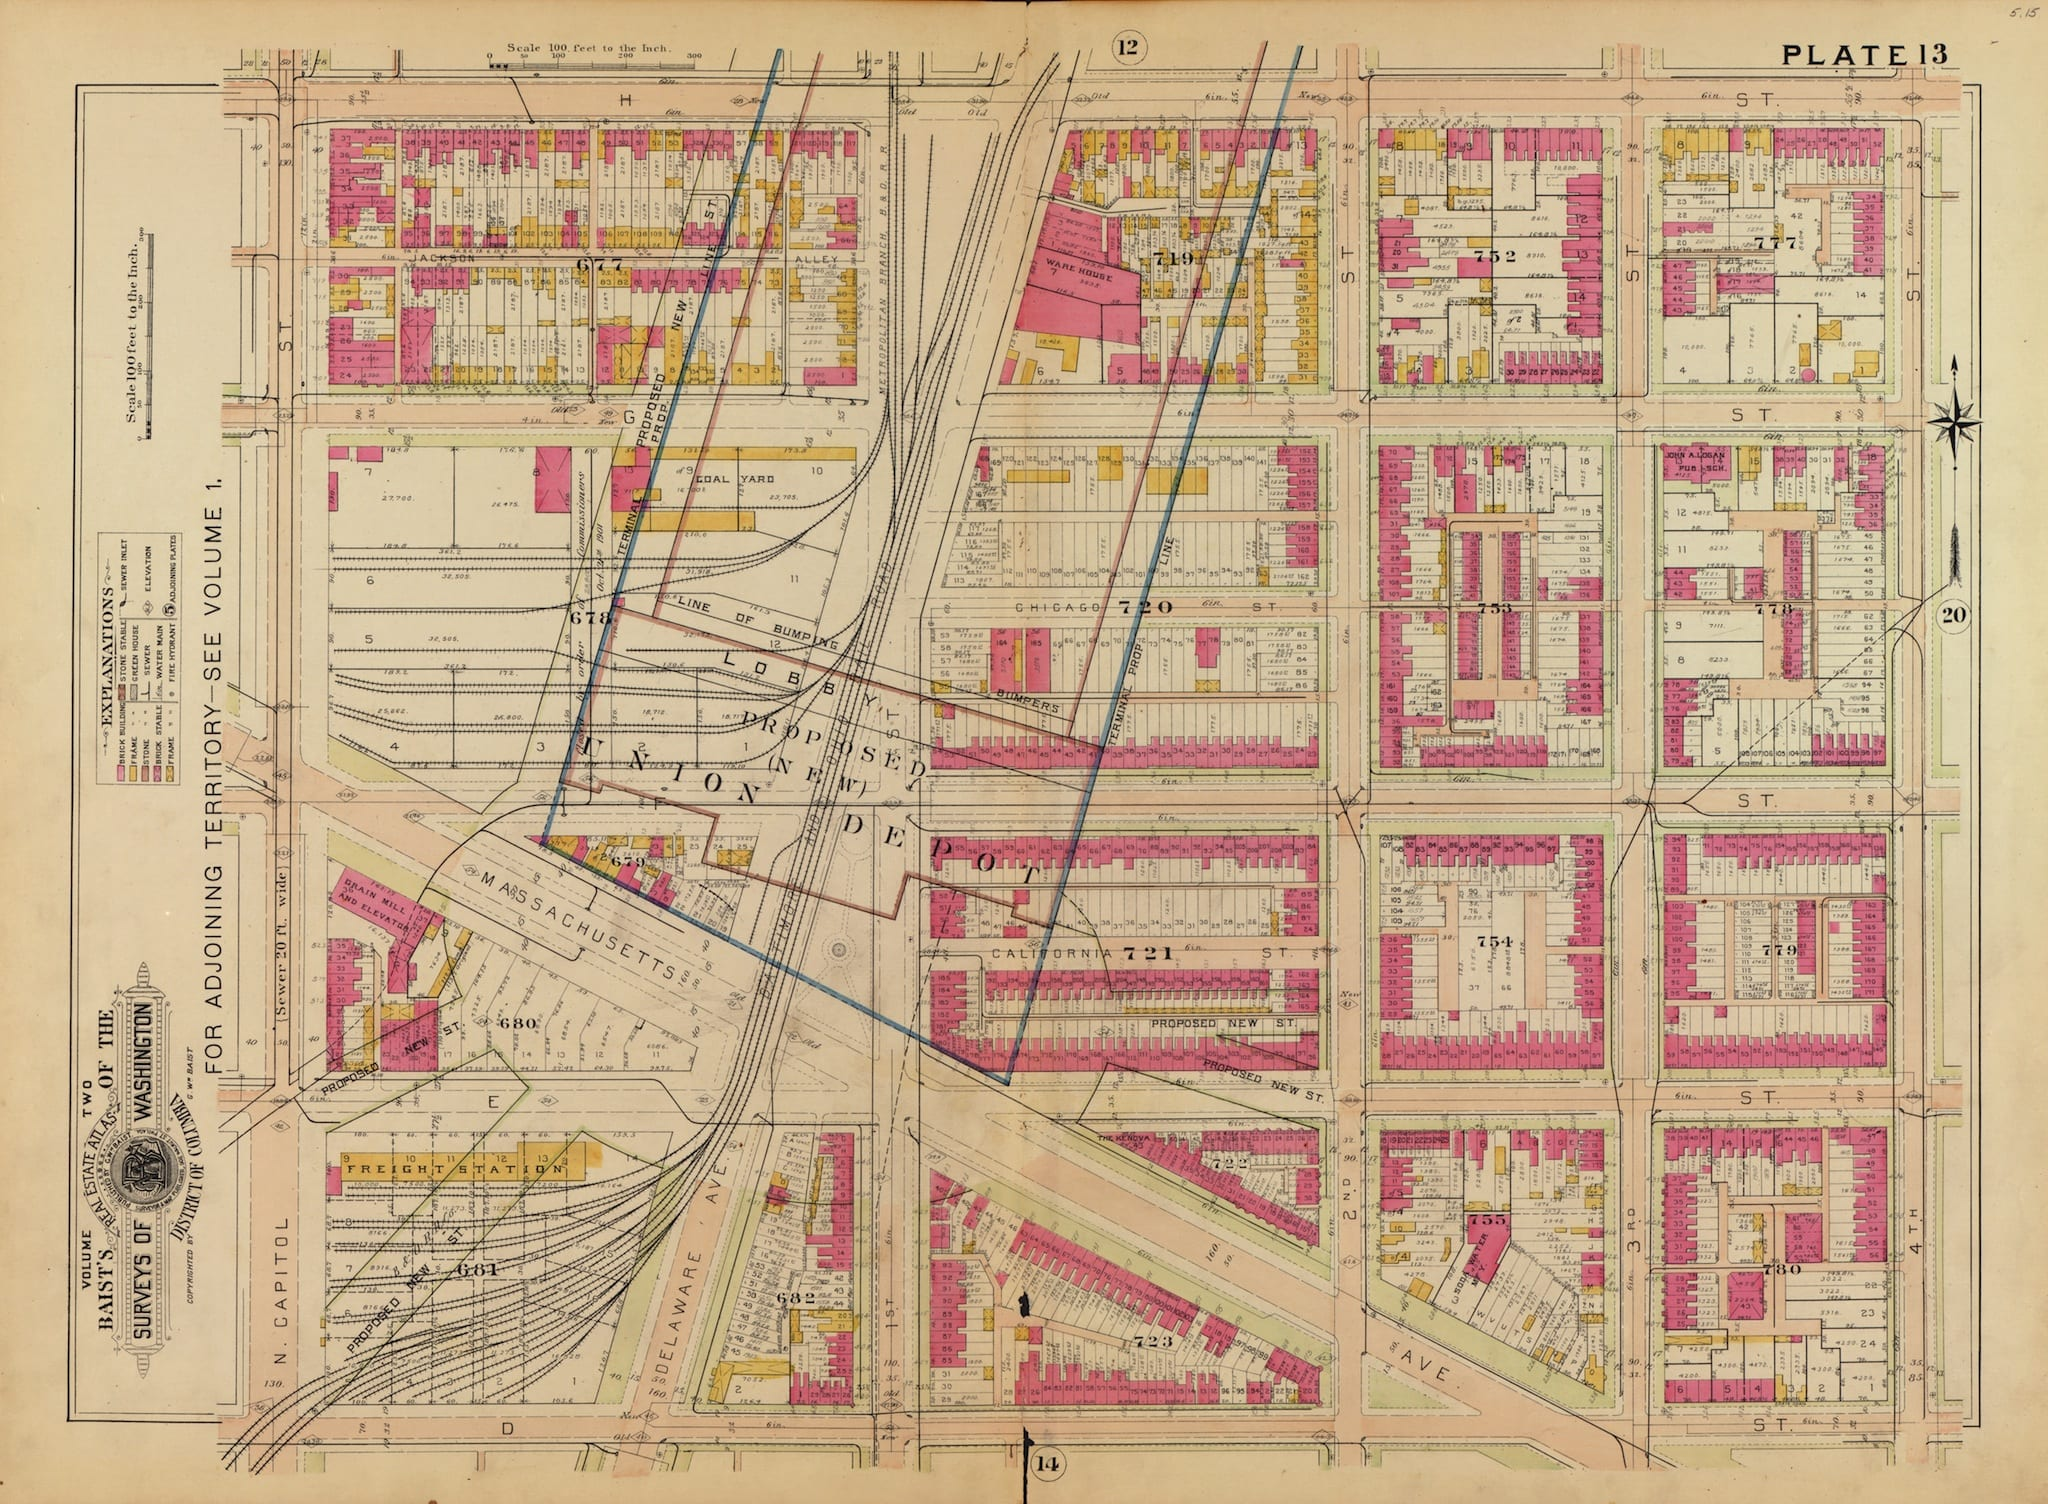 Map of Swampoodle and Proposed Union Depot